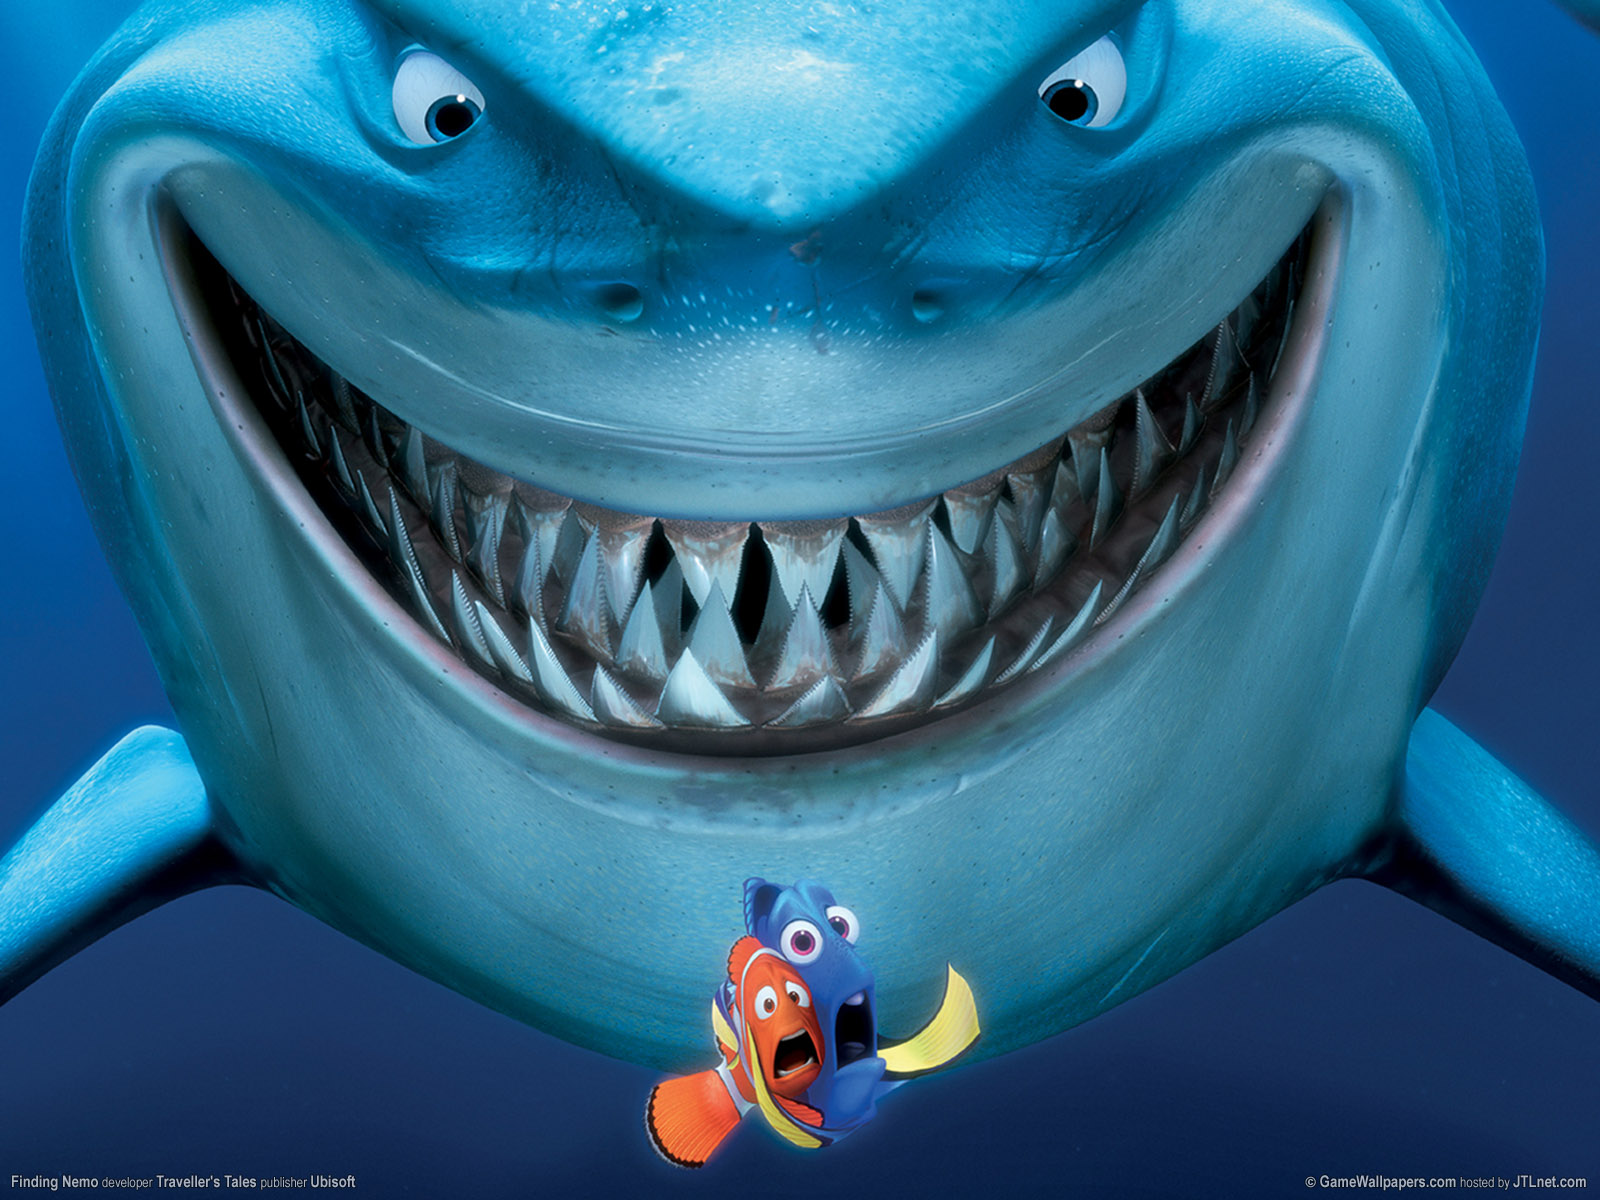 Finding Nemo Great White Shark